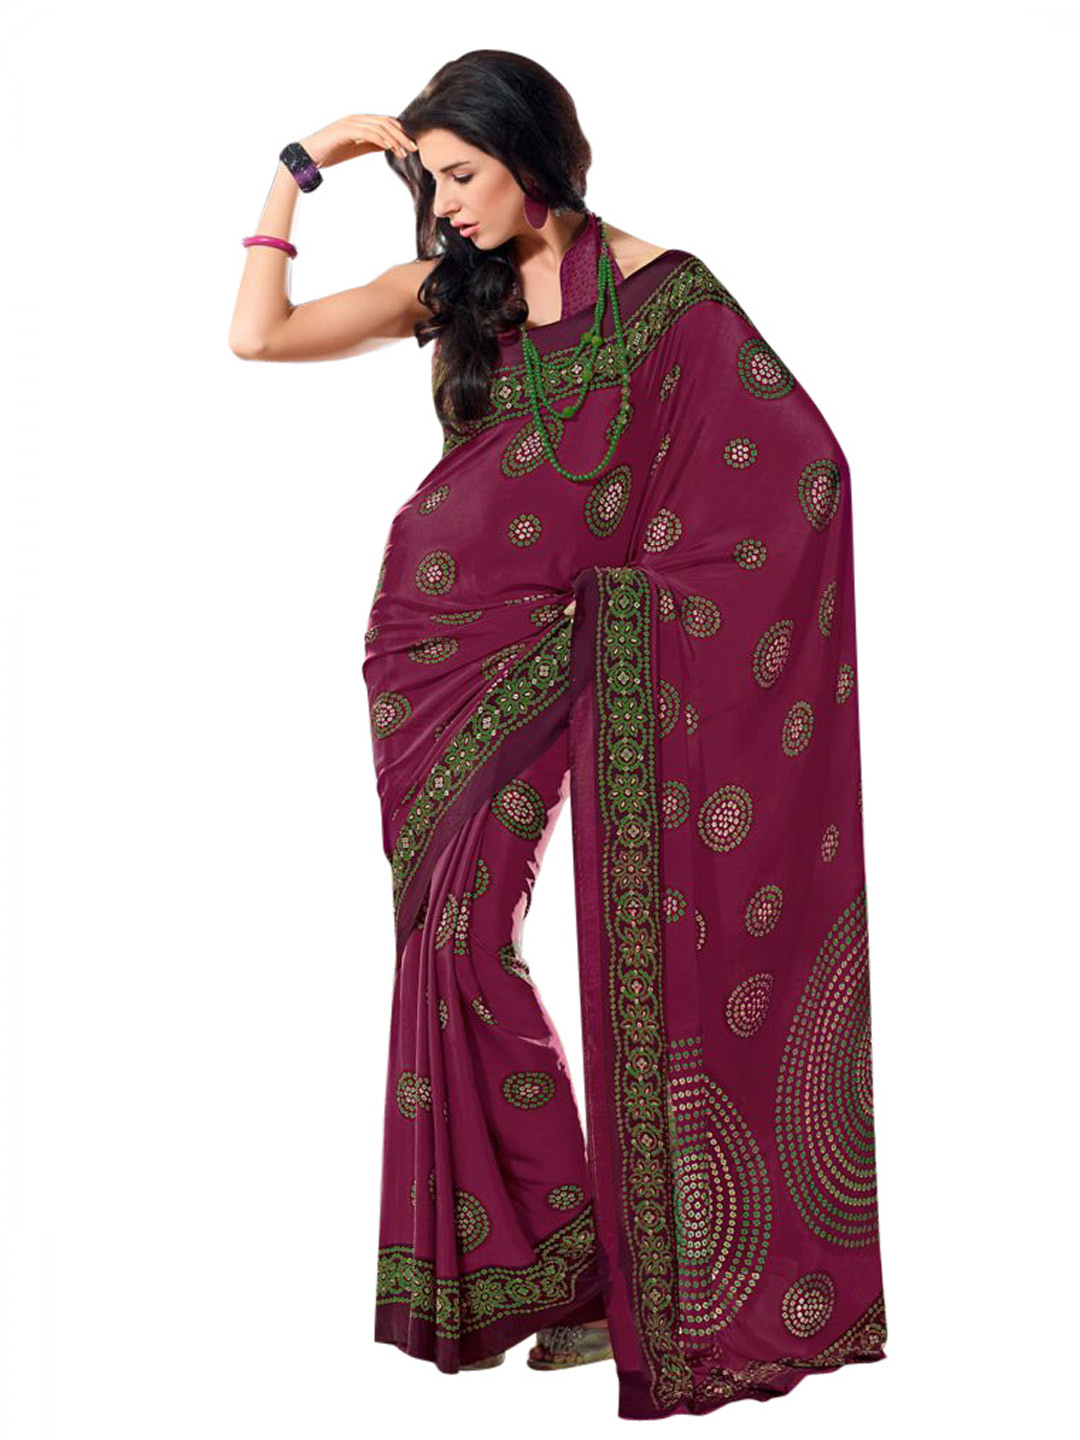 Prafful Purple & Green Sari